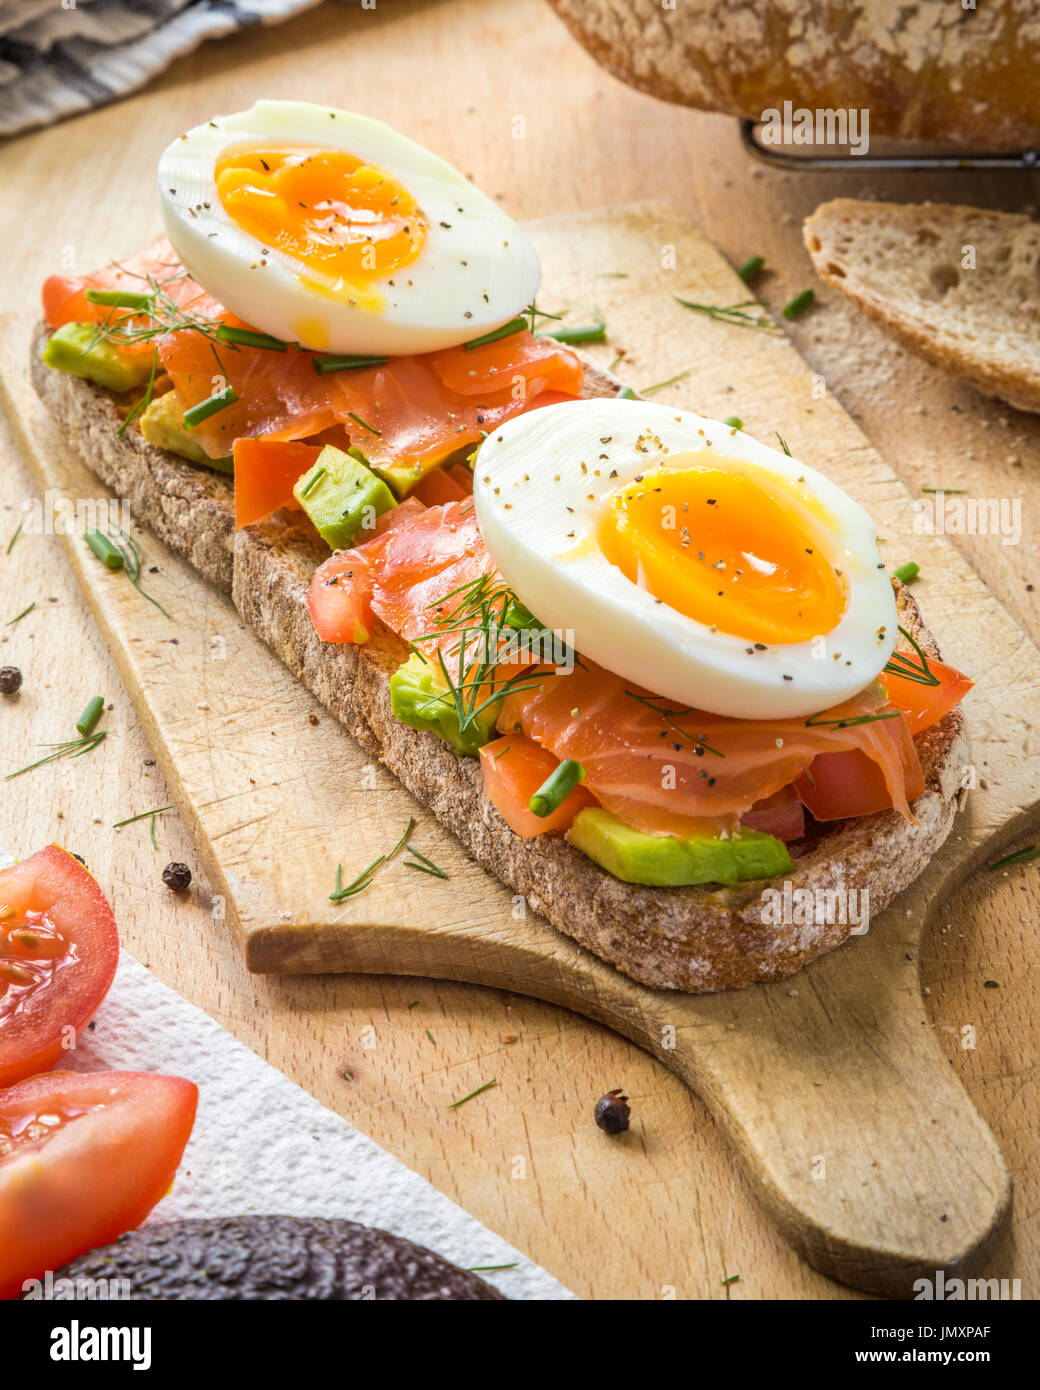 Toasted sourdough bread with Tomato, Avocado - Stock Image